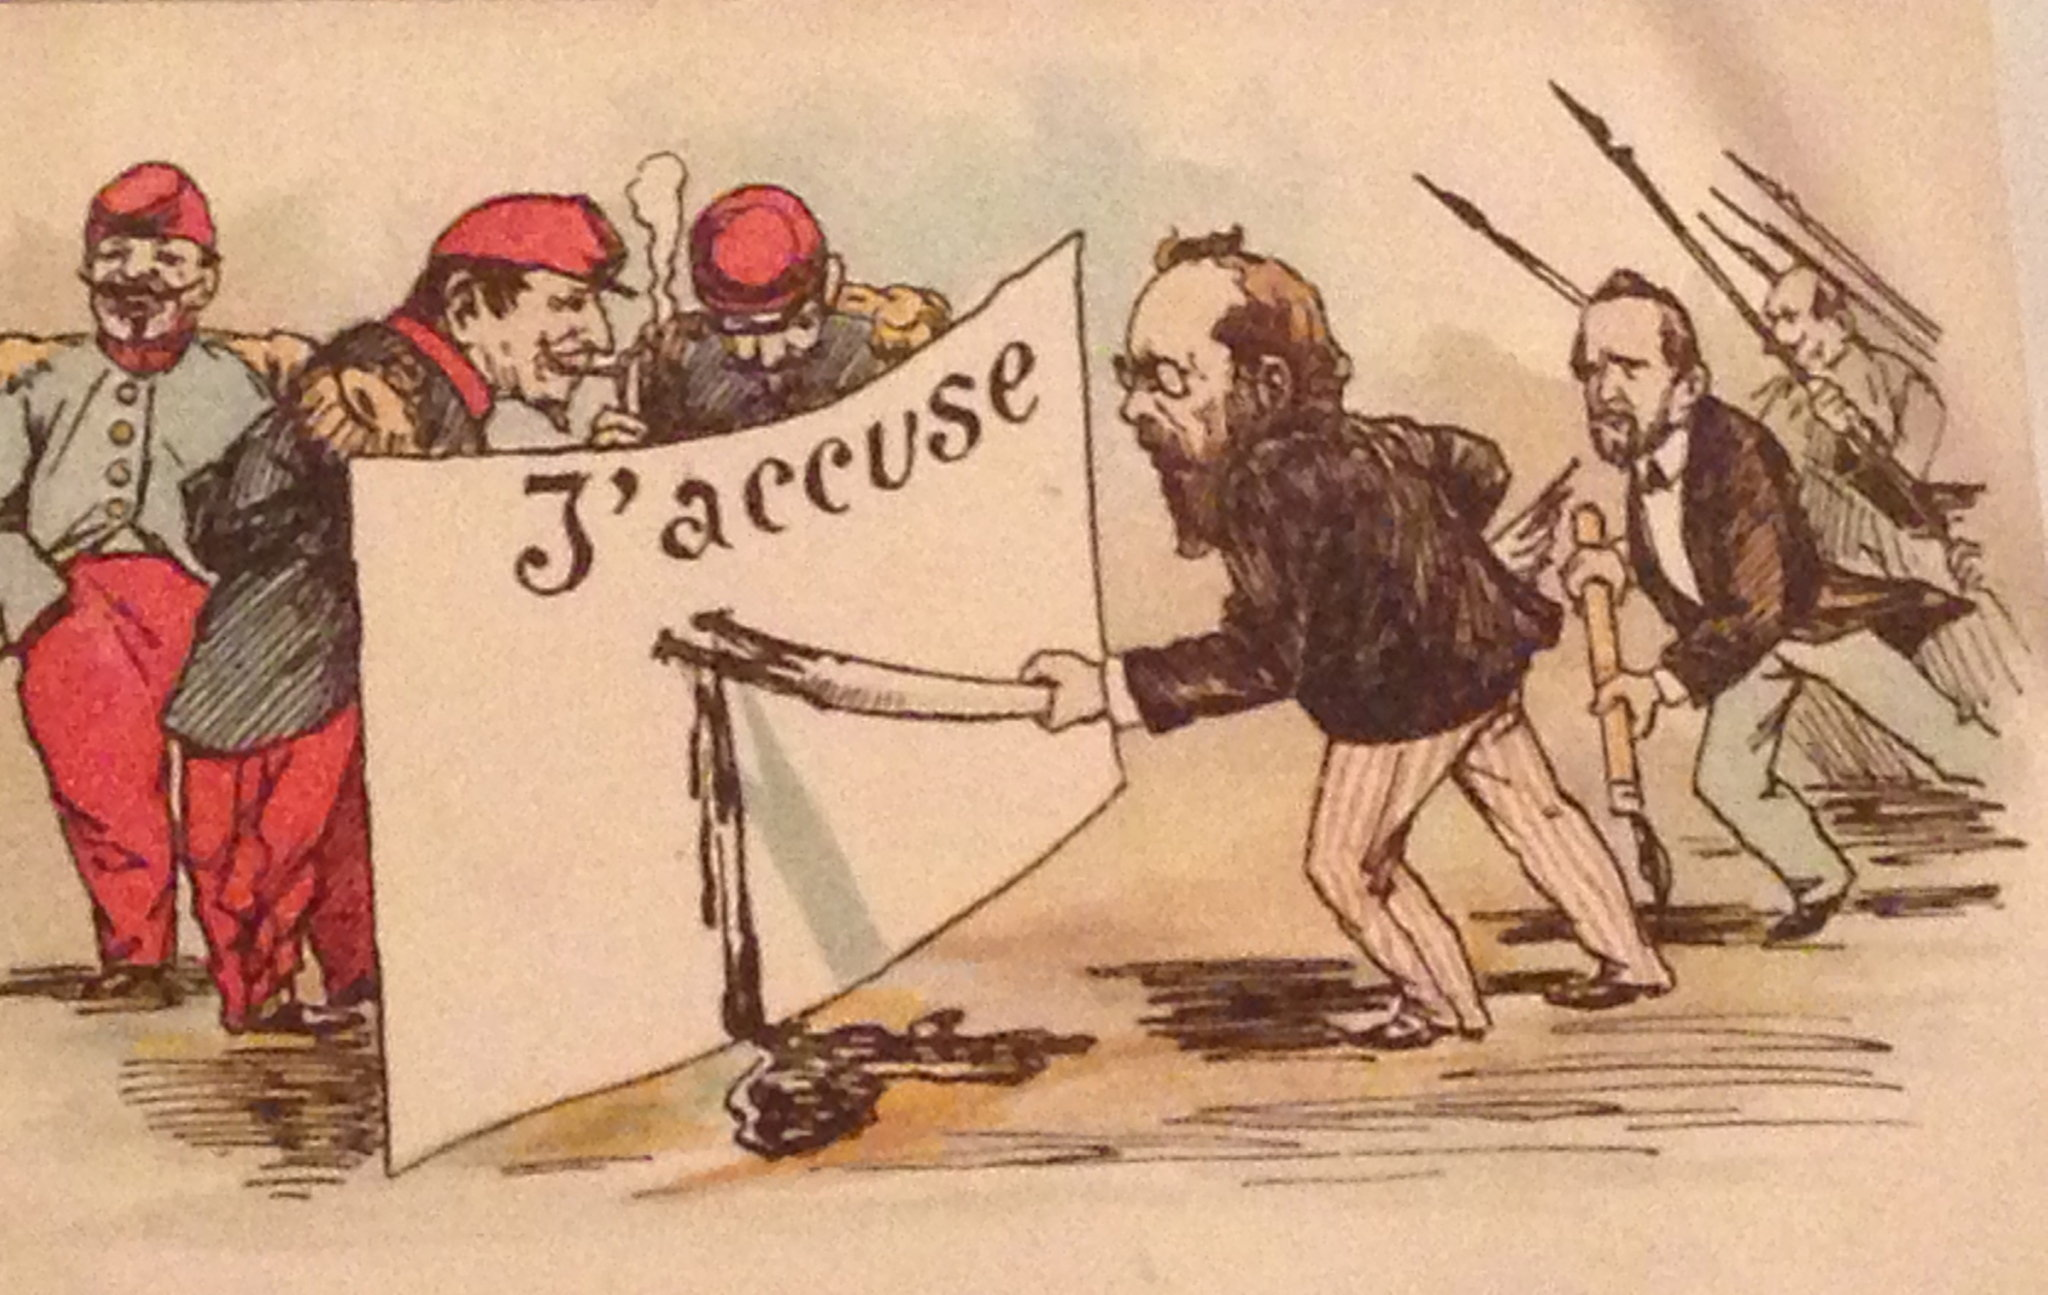 What was the Dreyfus affair?